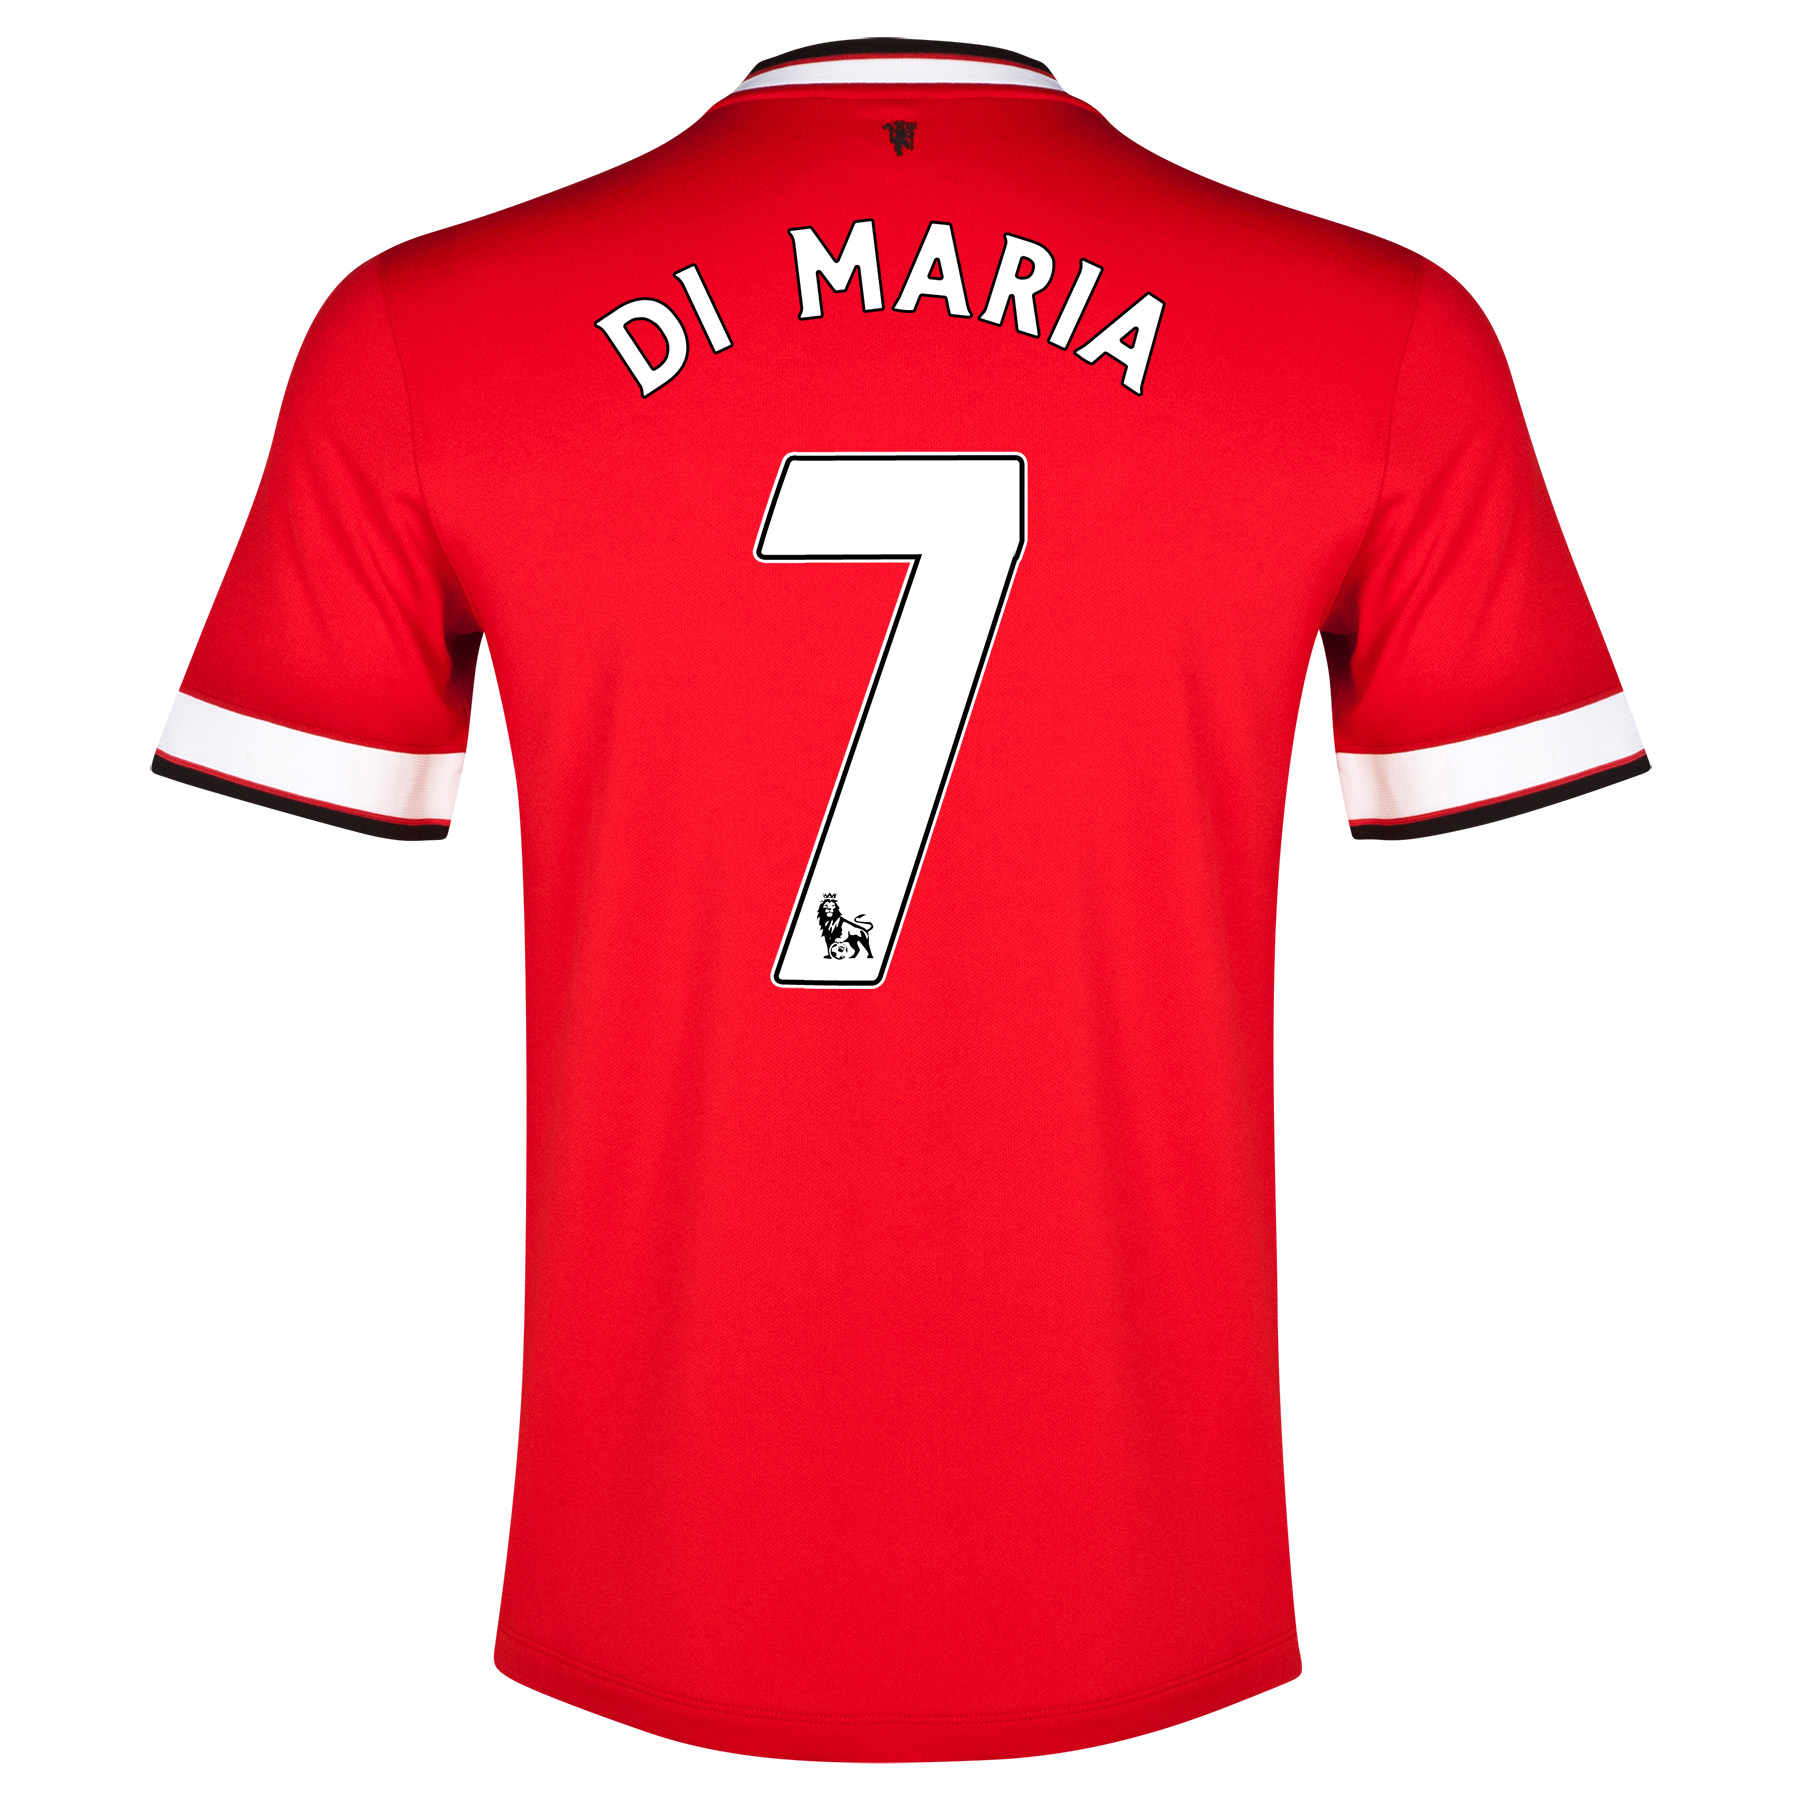 Manchester United Home Shirt 2014/15 with Di Maria 7 printing